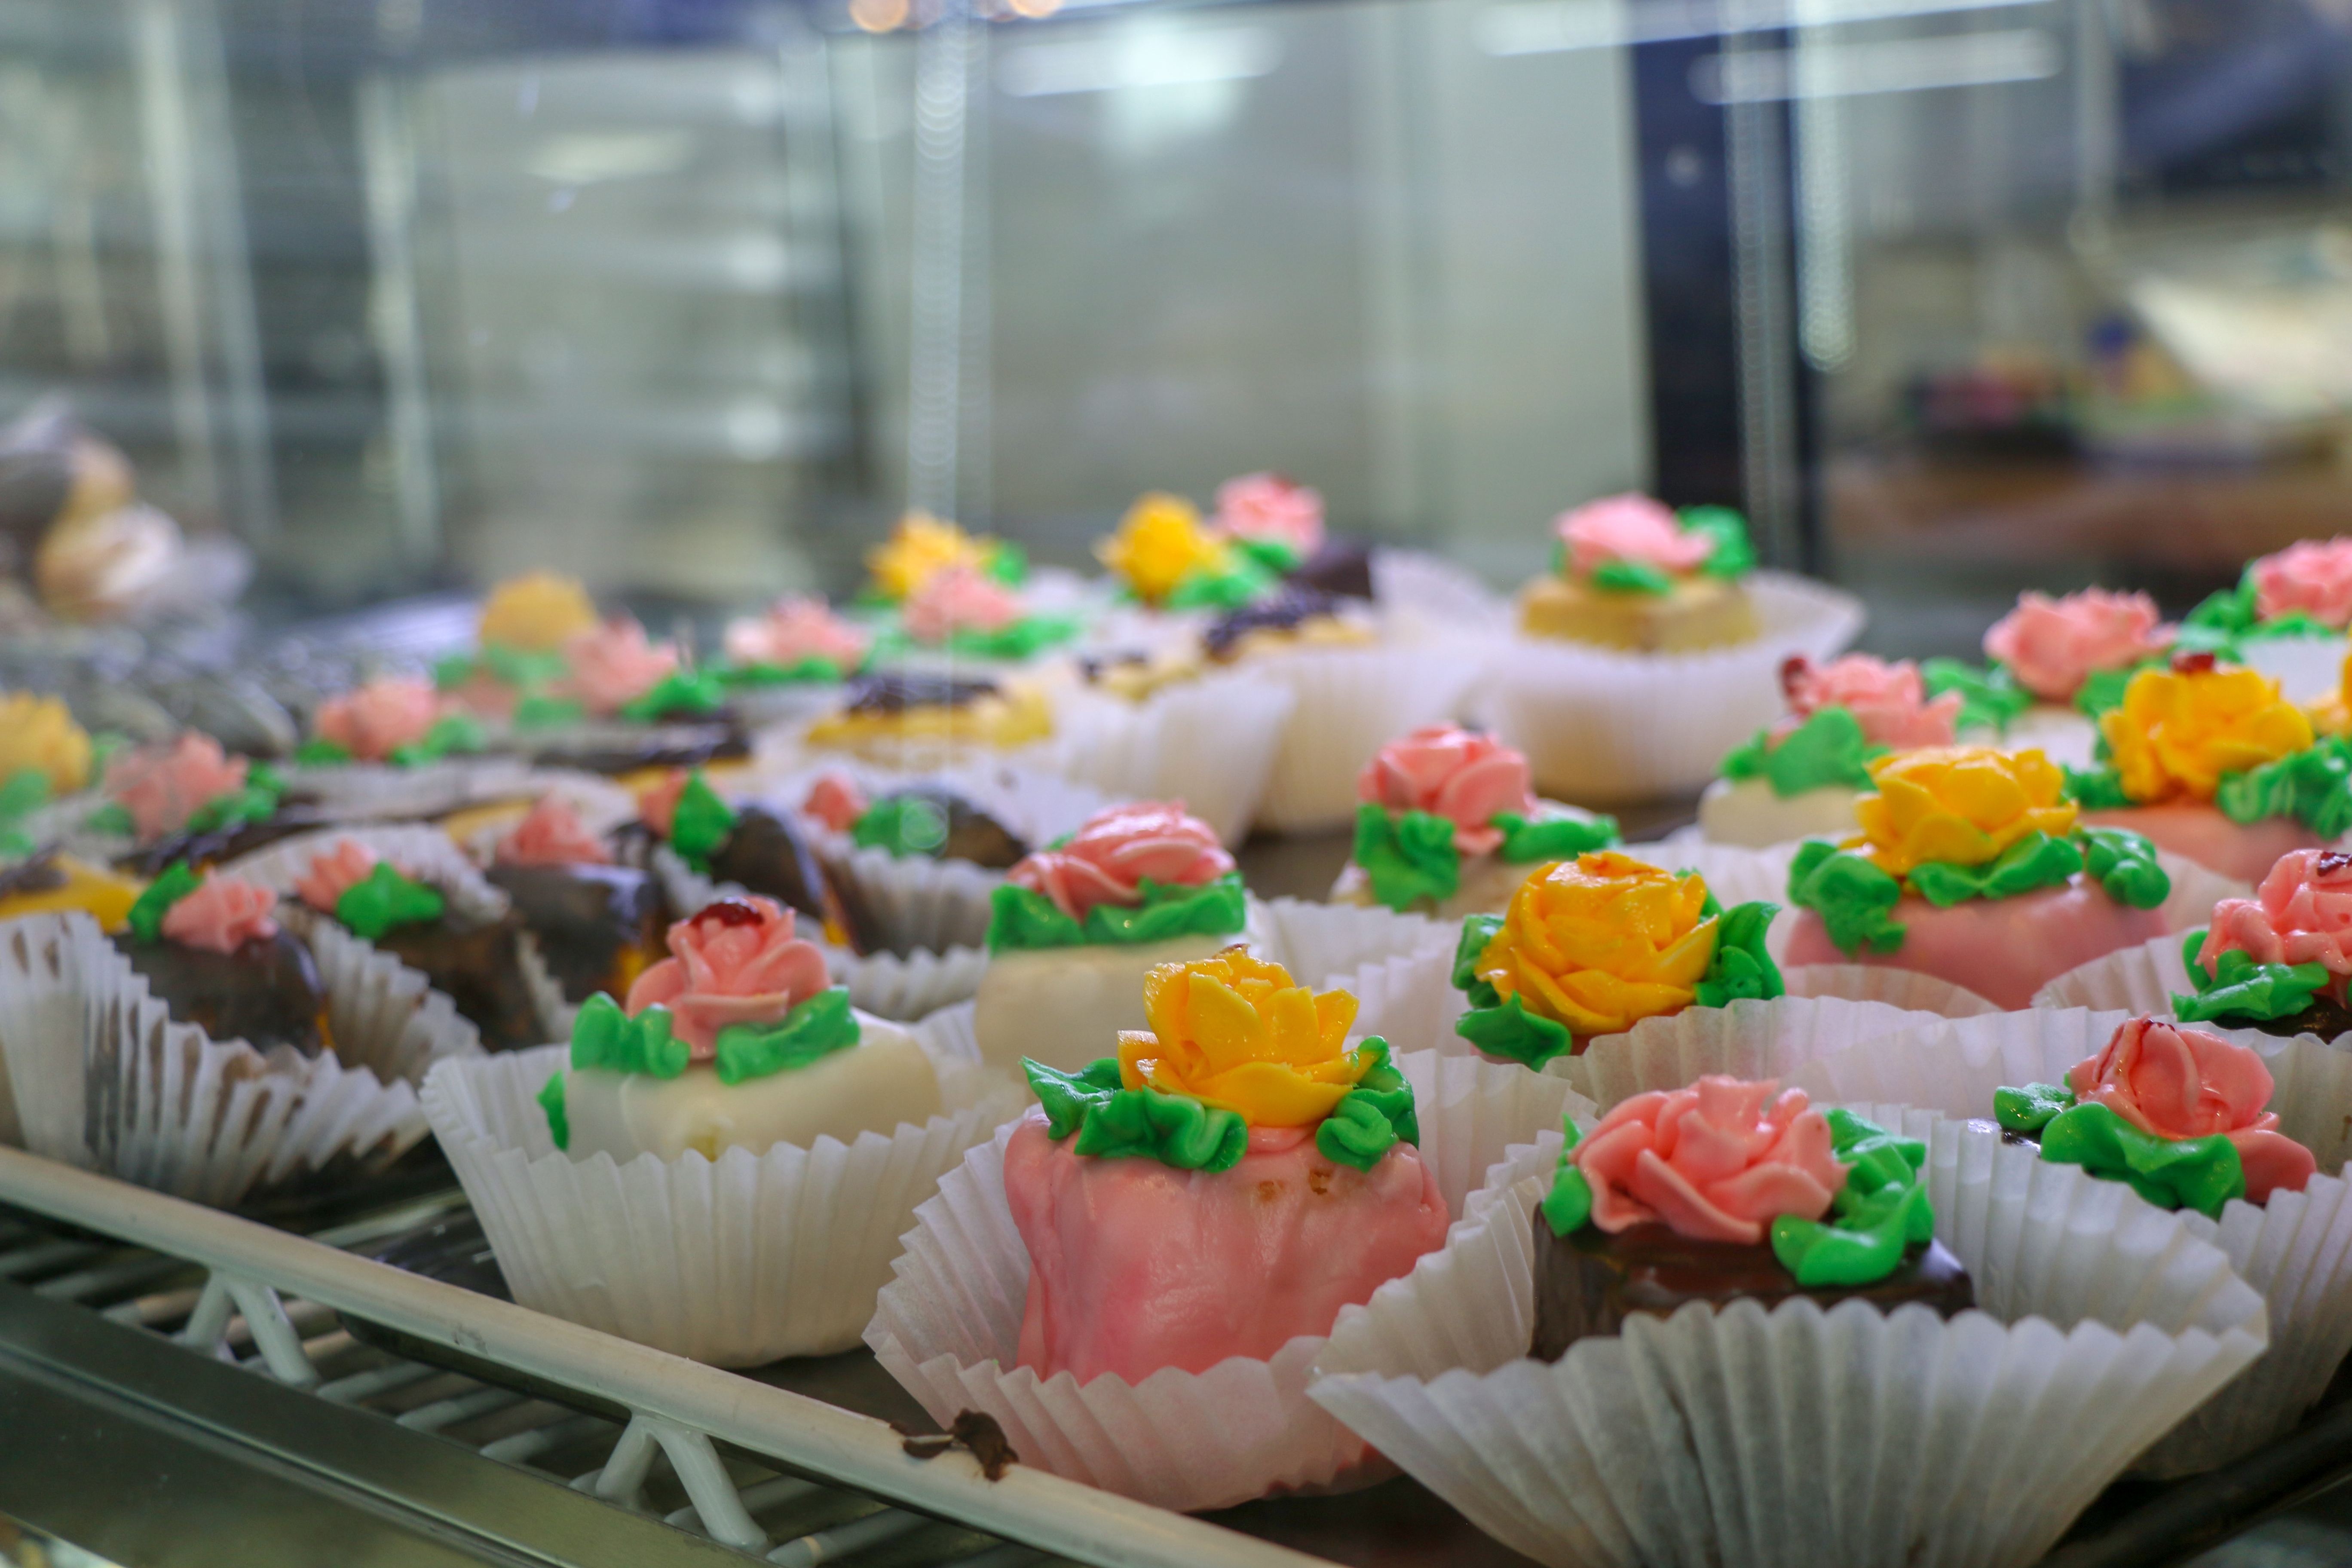 Cupcakes are one of the many options at Mountain Fresh Grocery's bakery.